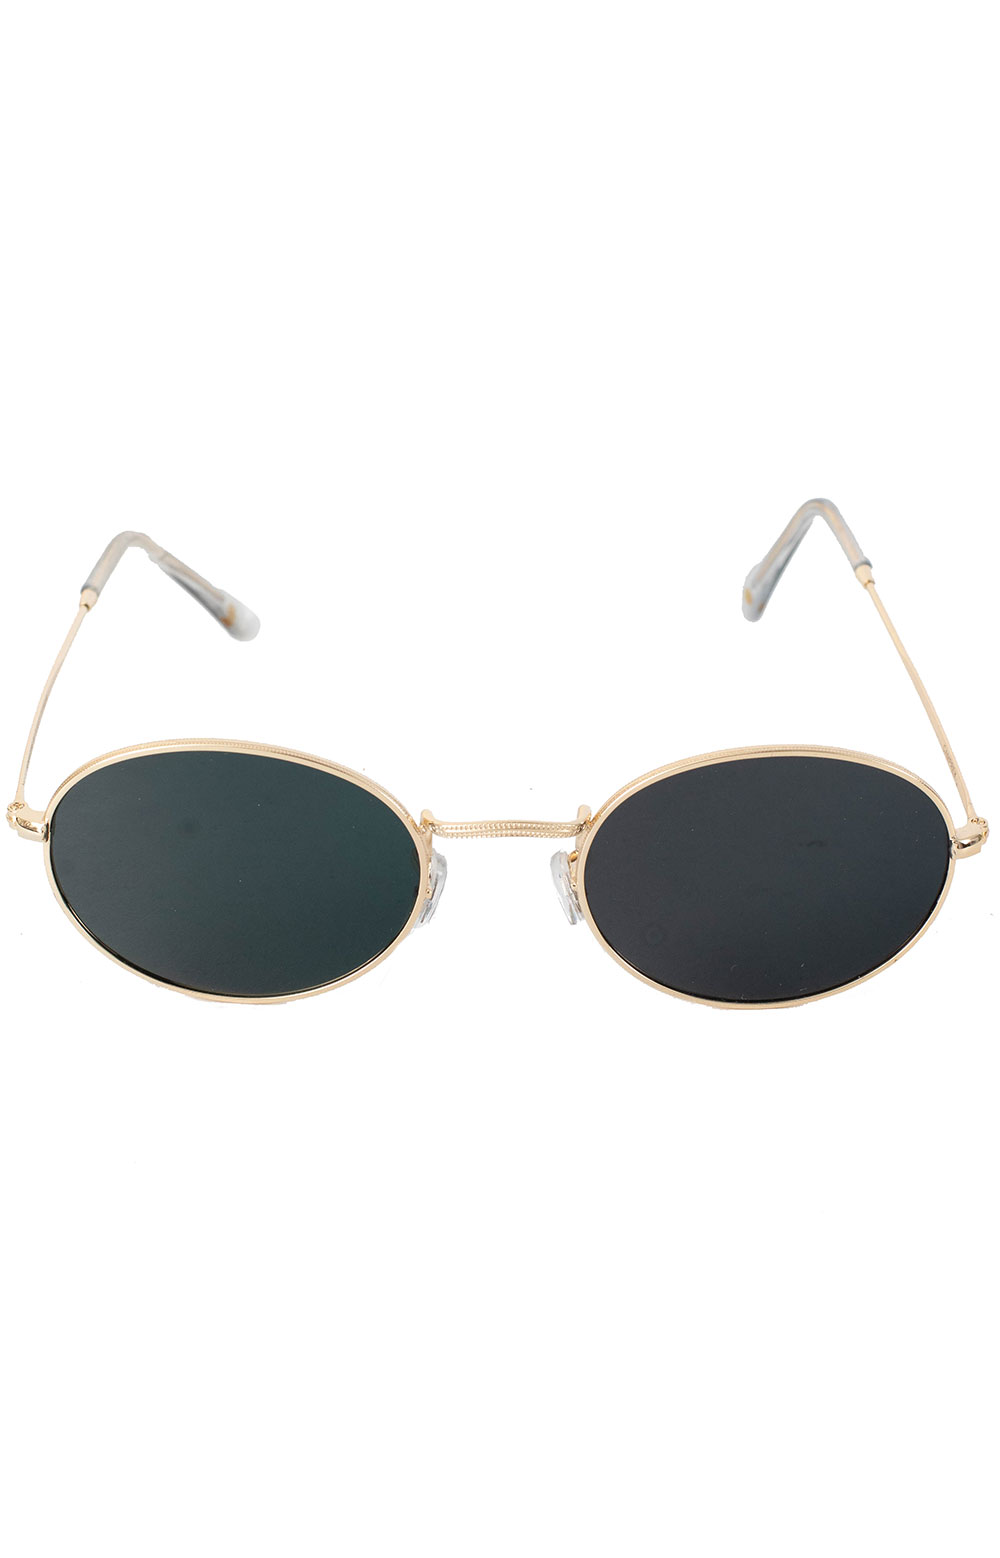 Campbell Polarized Sunglasses - Gold 2